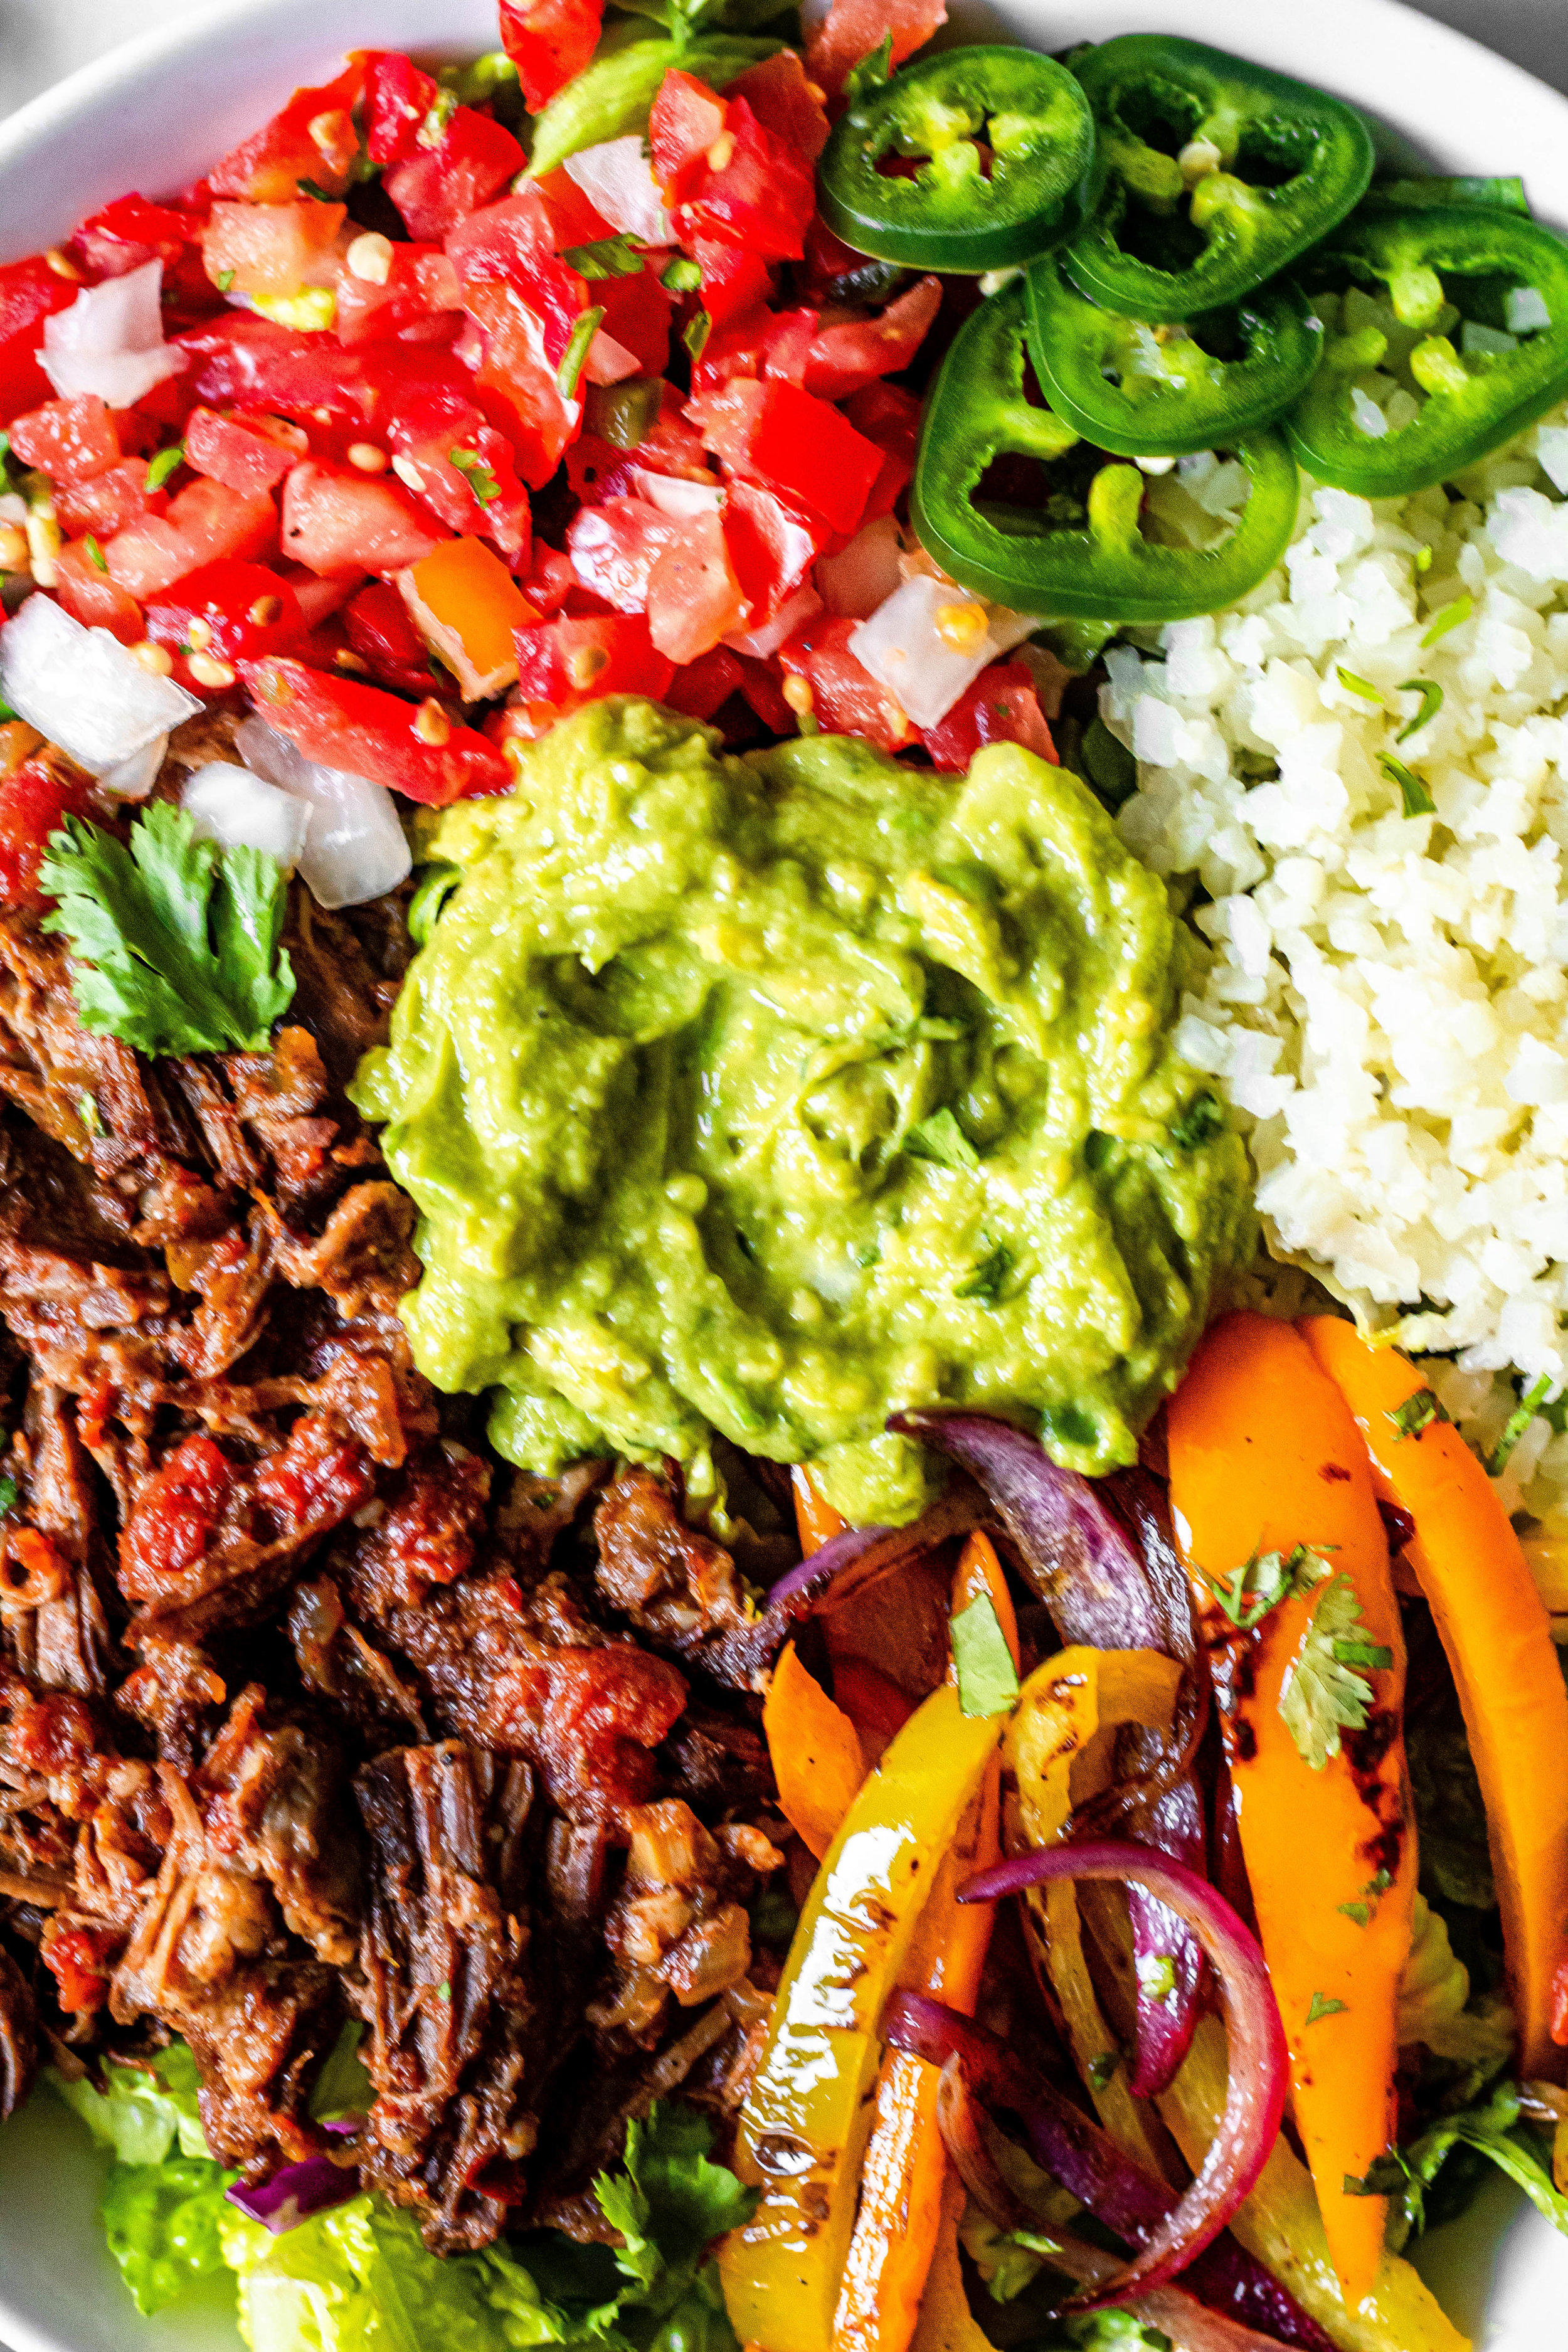 Slow Cooker Chipotle Beef toppings.jpg